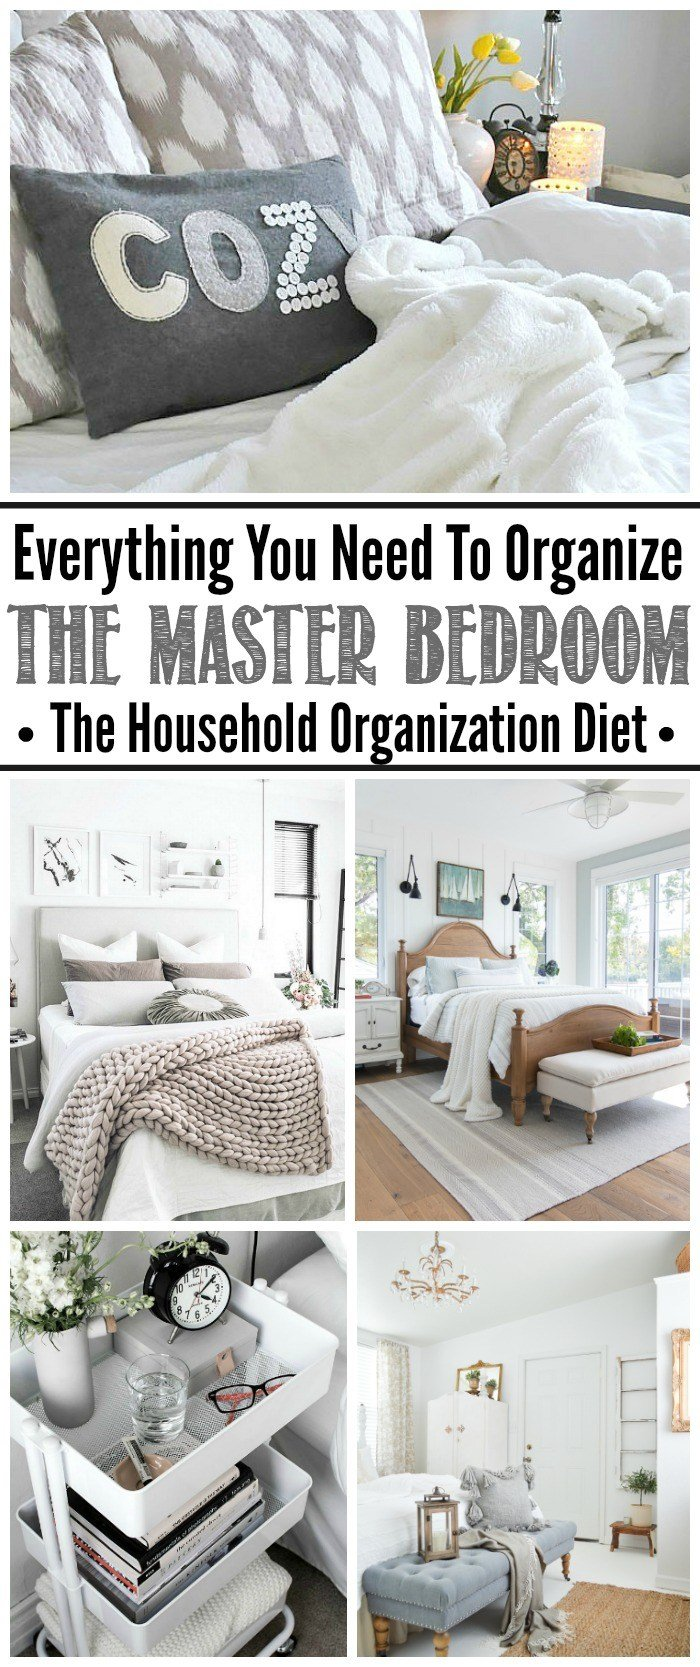 Best How To Organize The Master Bedroom September Hod Clean And Scentsible With Pictures